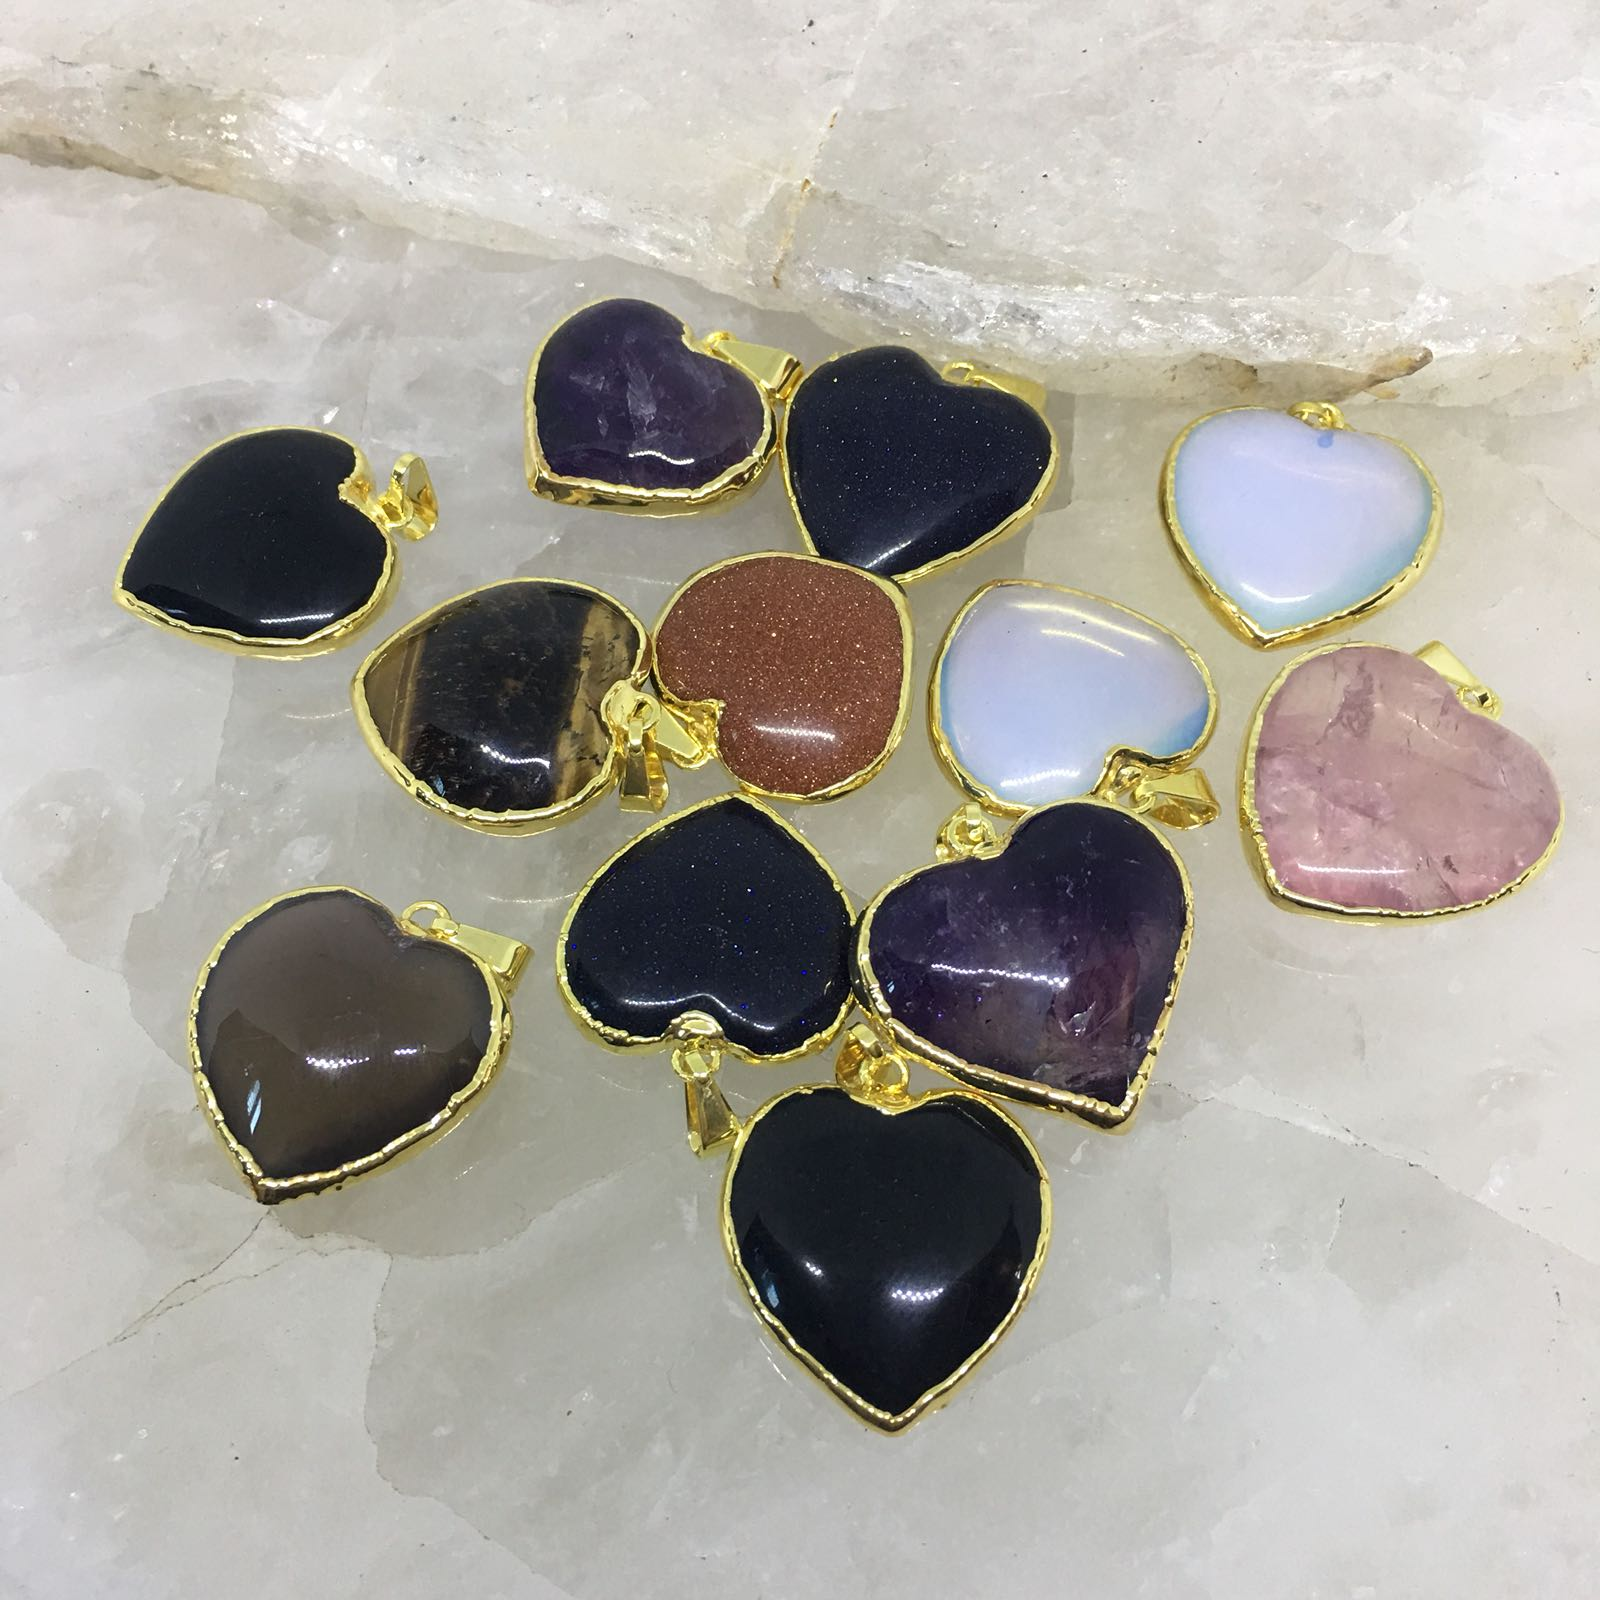 Stones from Uruguay - Gold Plated Quartz Heart Cabochon Pendants, 25mm